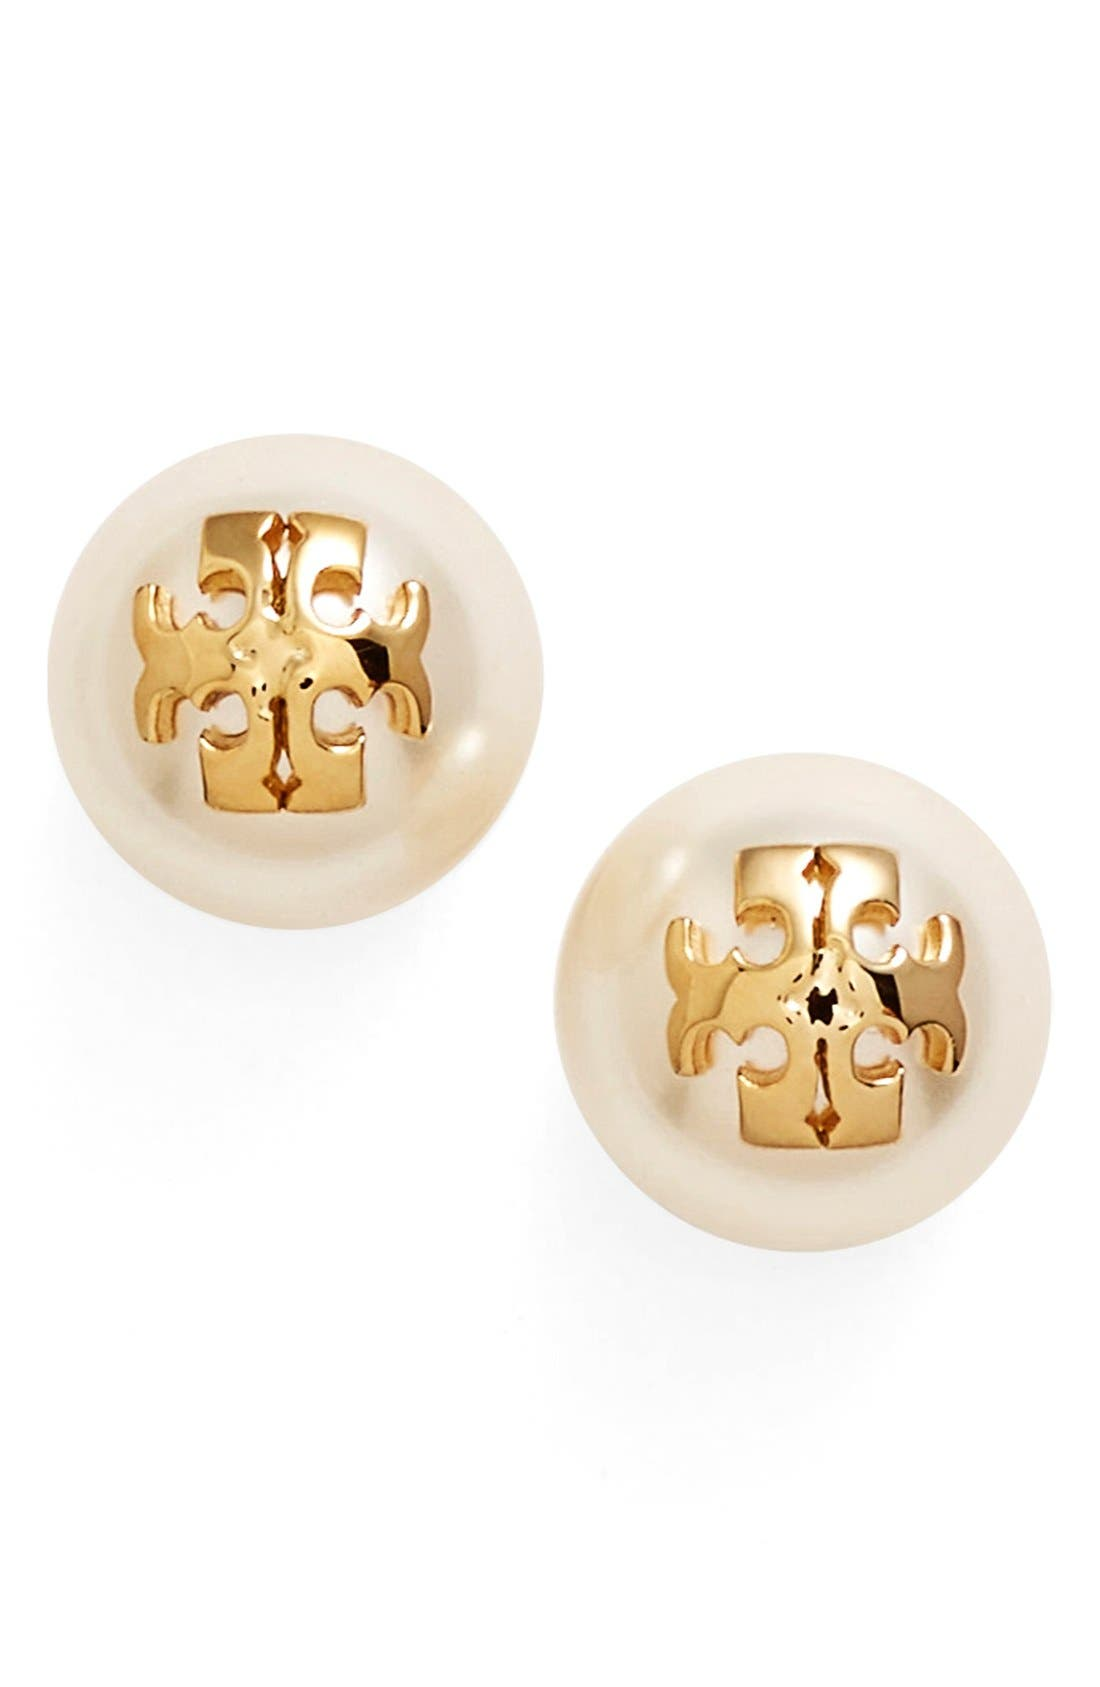 Alternate Image 1 Selected - Tory Burch Swarovski Crystal Pearl Logo Stud Earrings